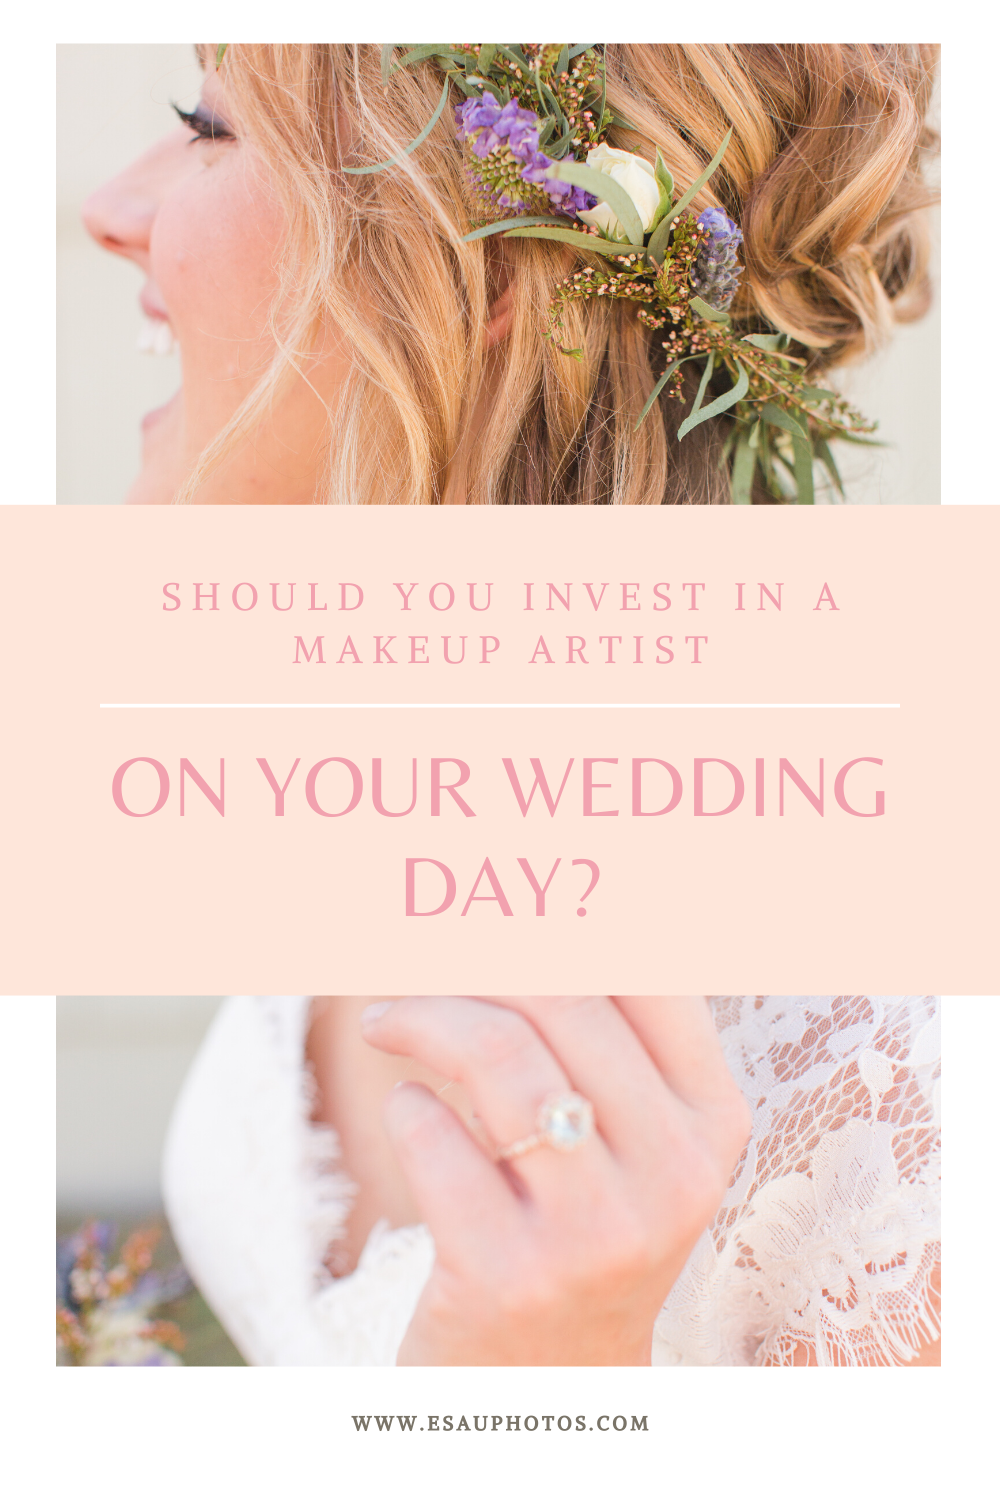 DO YOU NEED A MAKEUP ARTIST ON YOUR WEDING DAY?